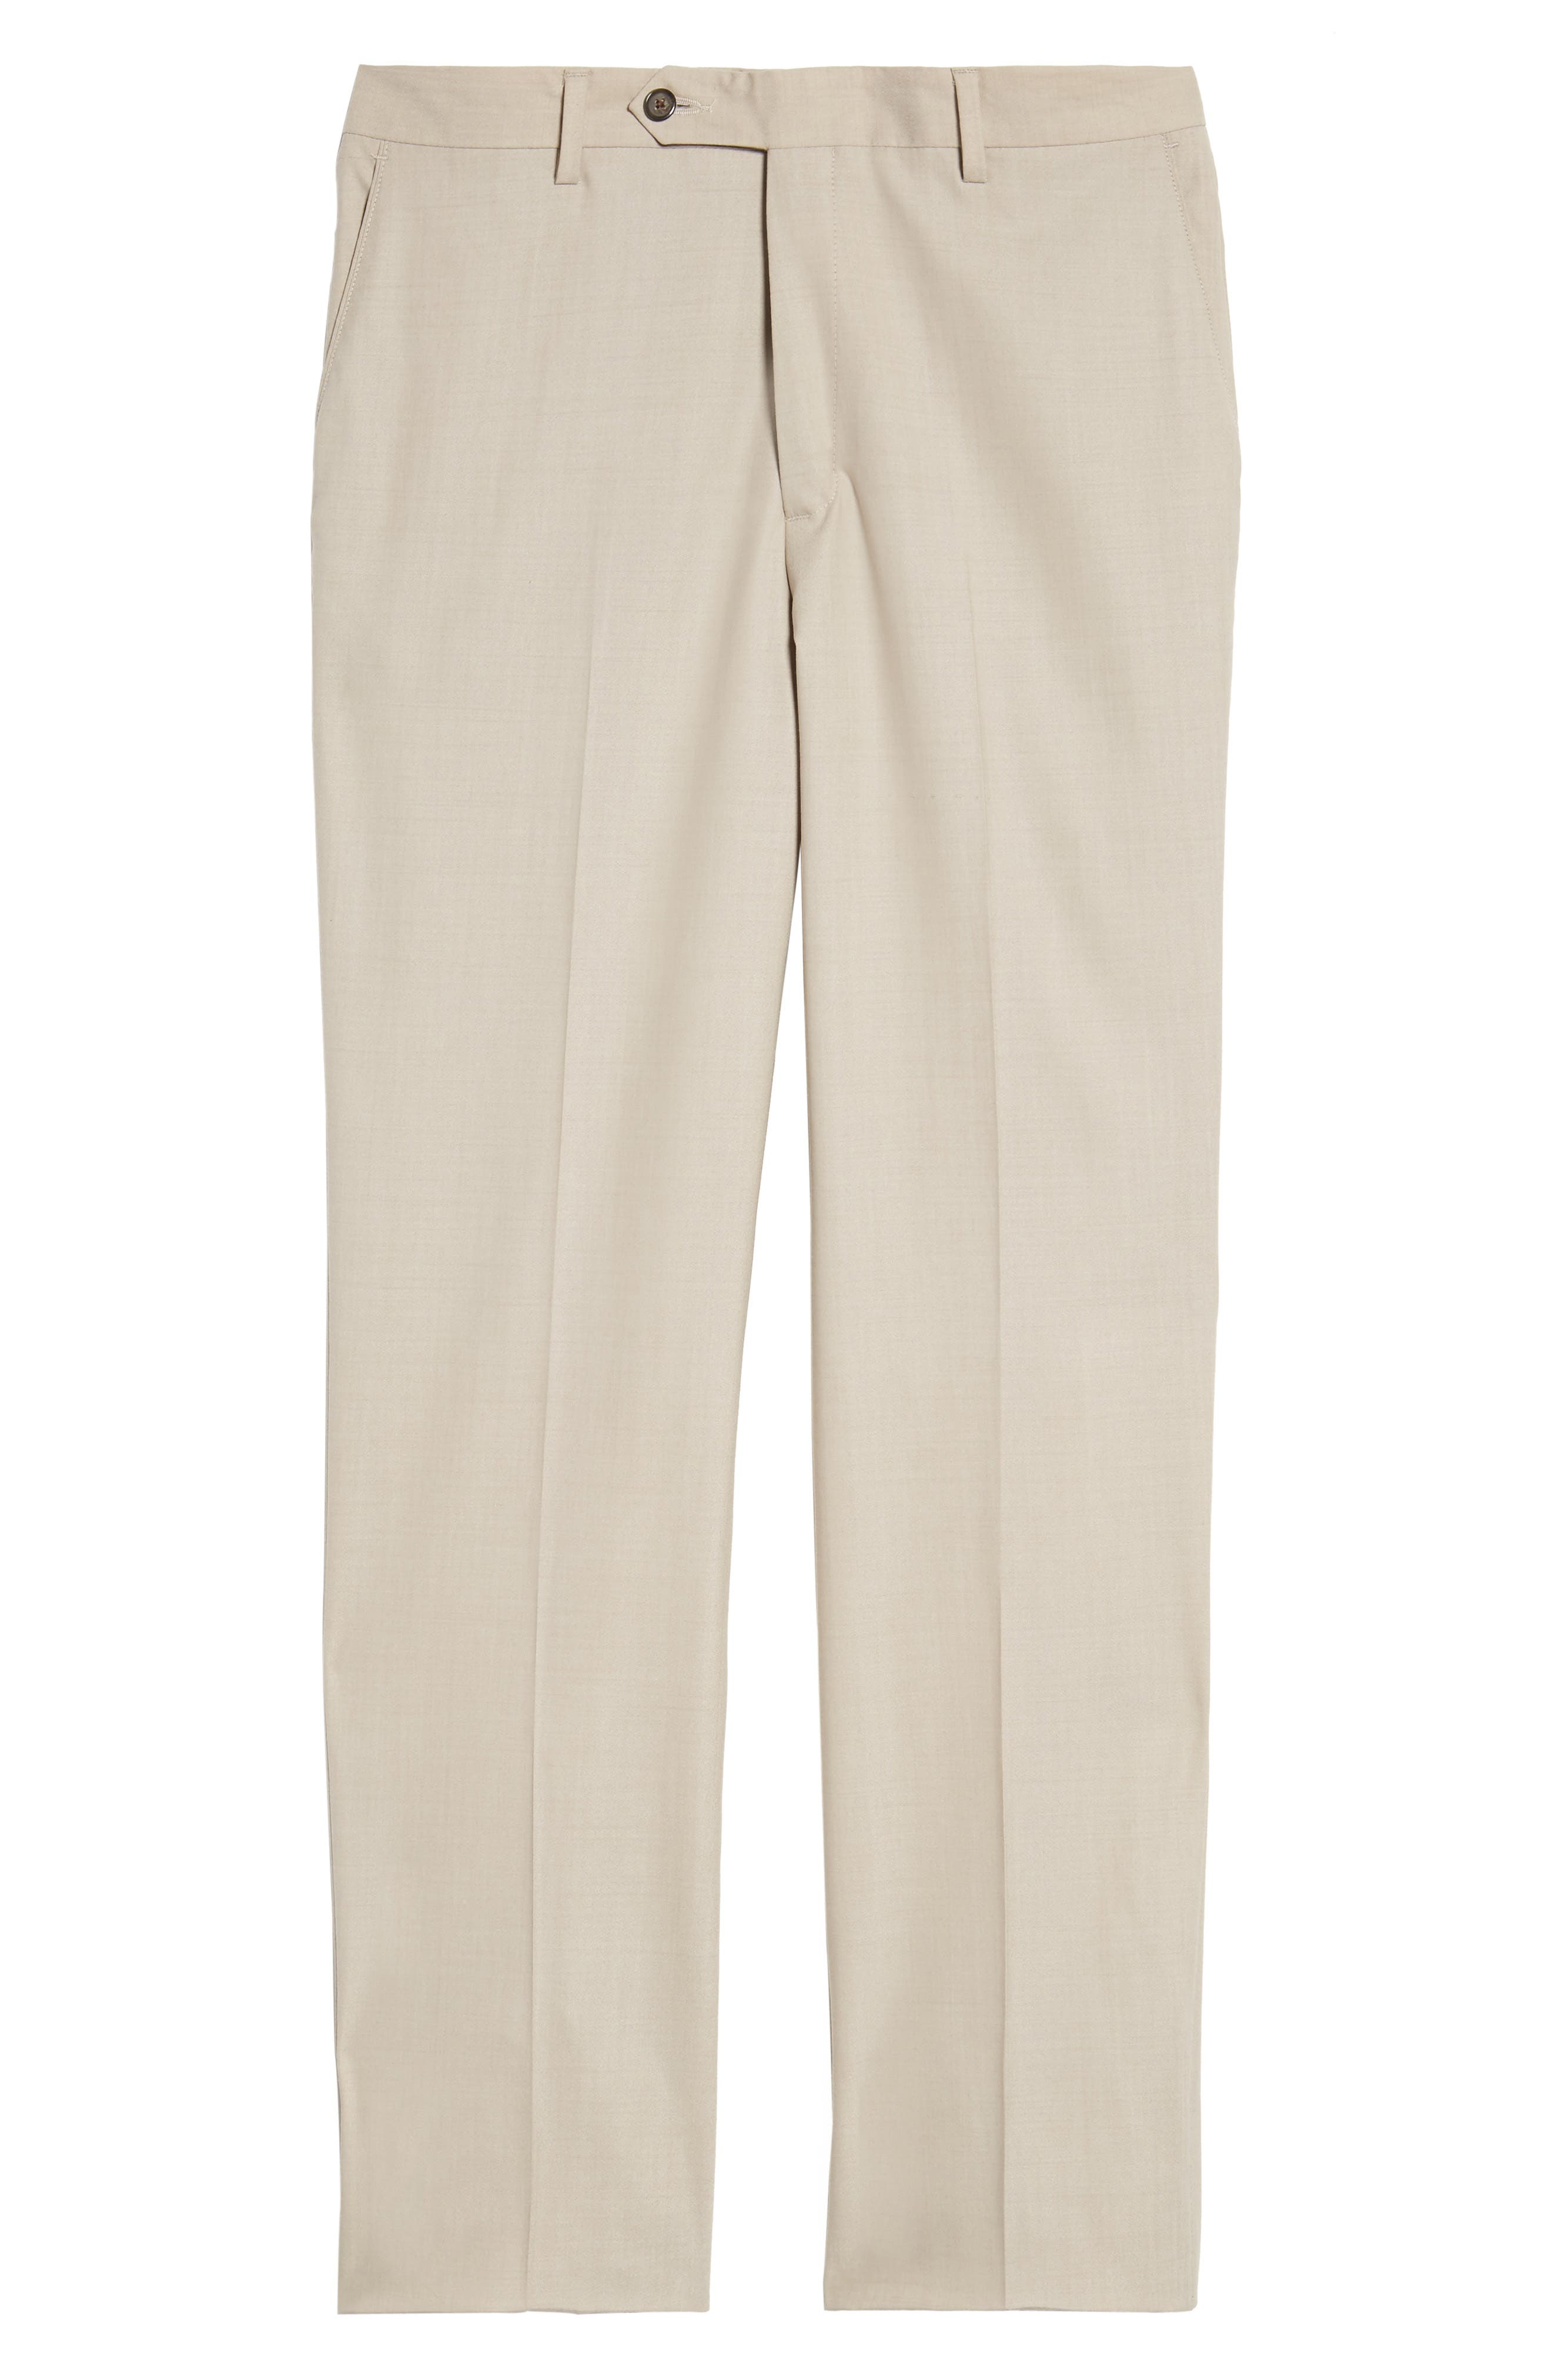 Flat Front Stretch Solid Wool Trousers,                             Alternate thumbnail 6, color,                             Tan